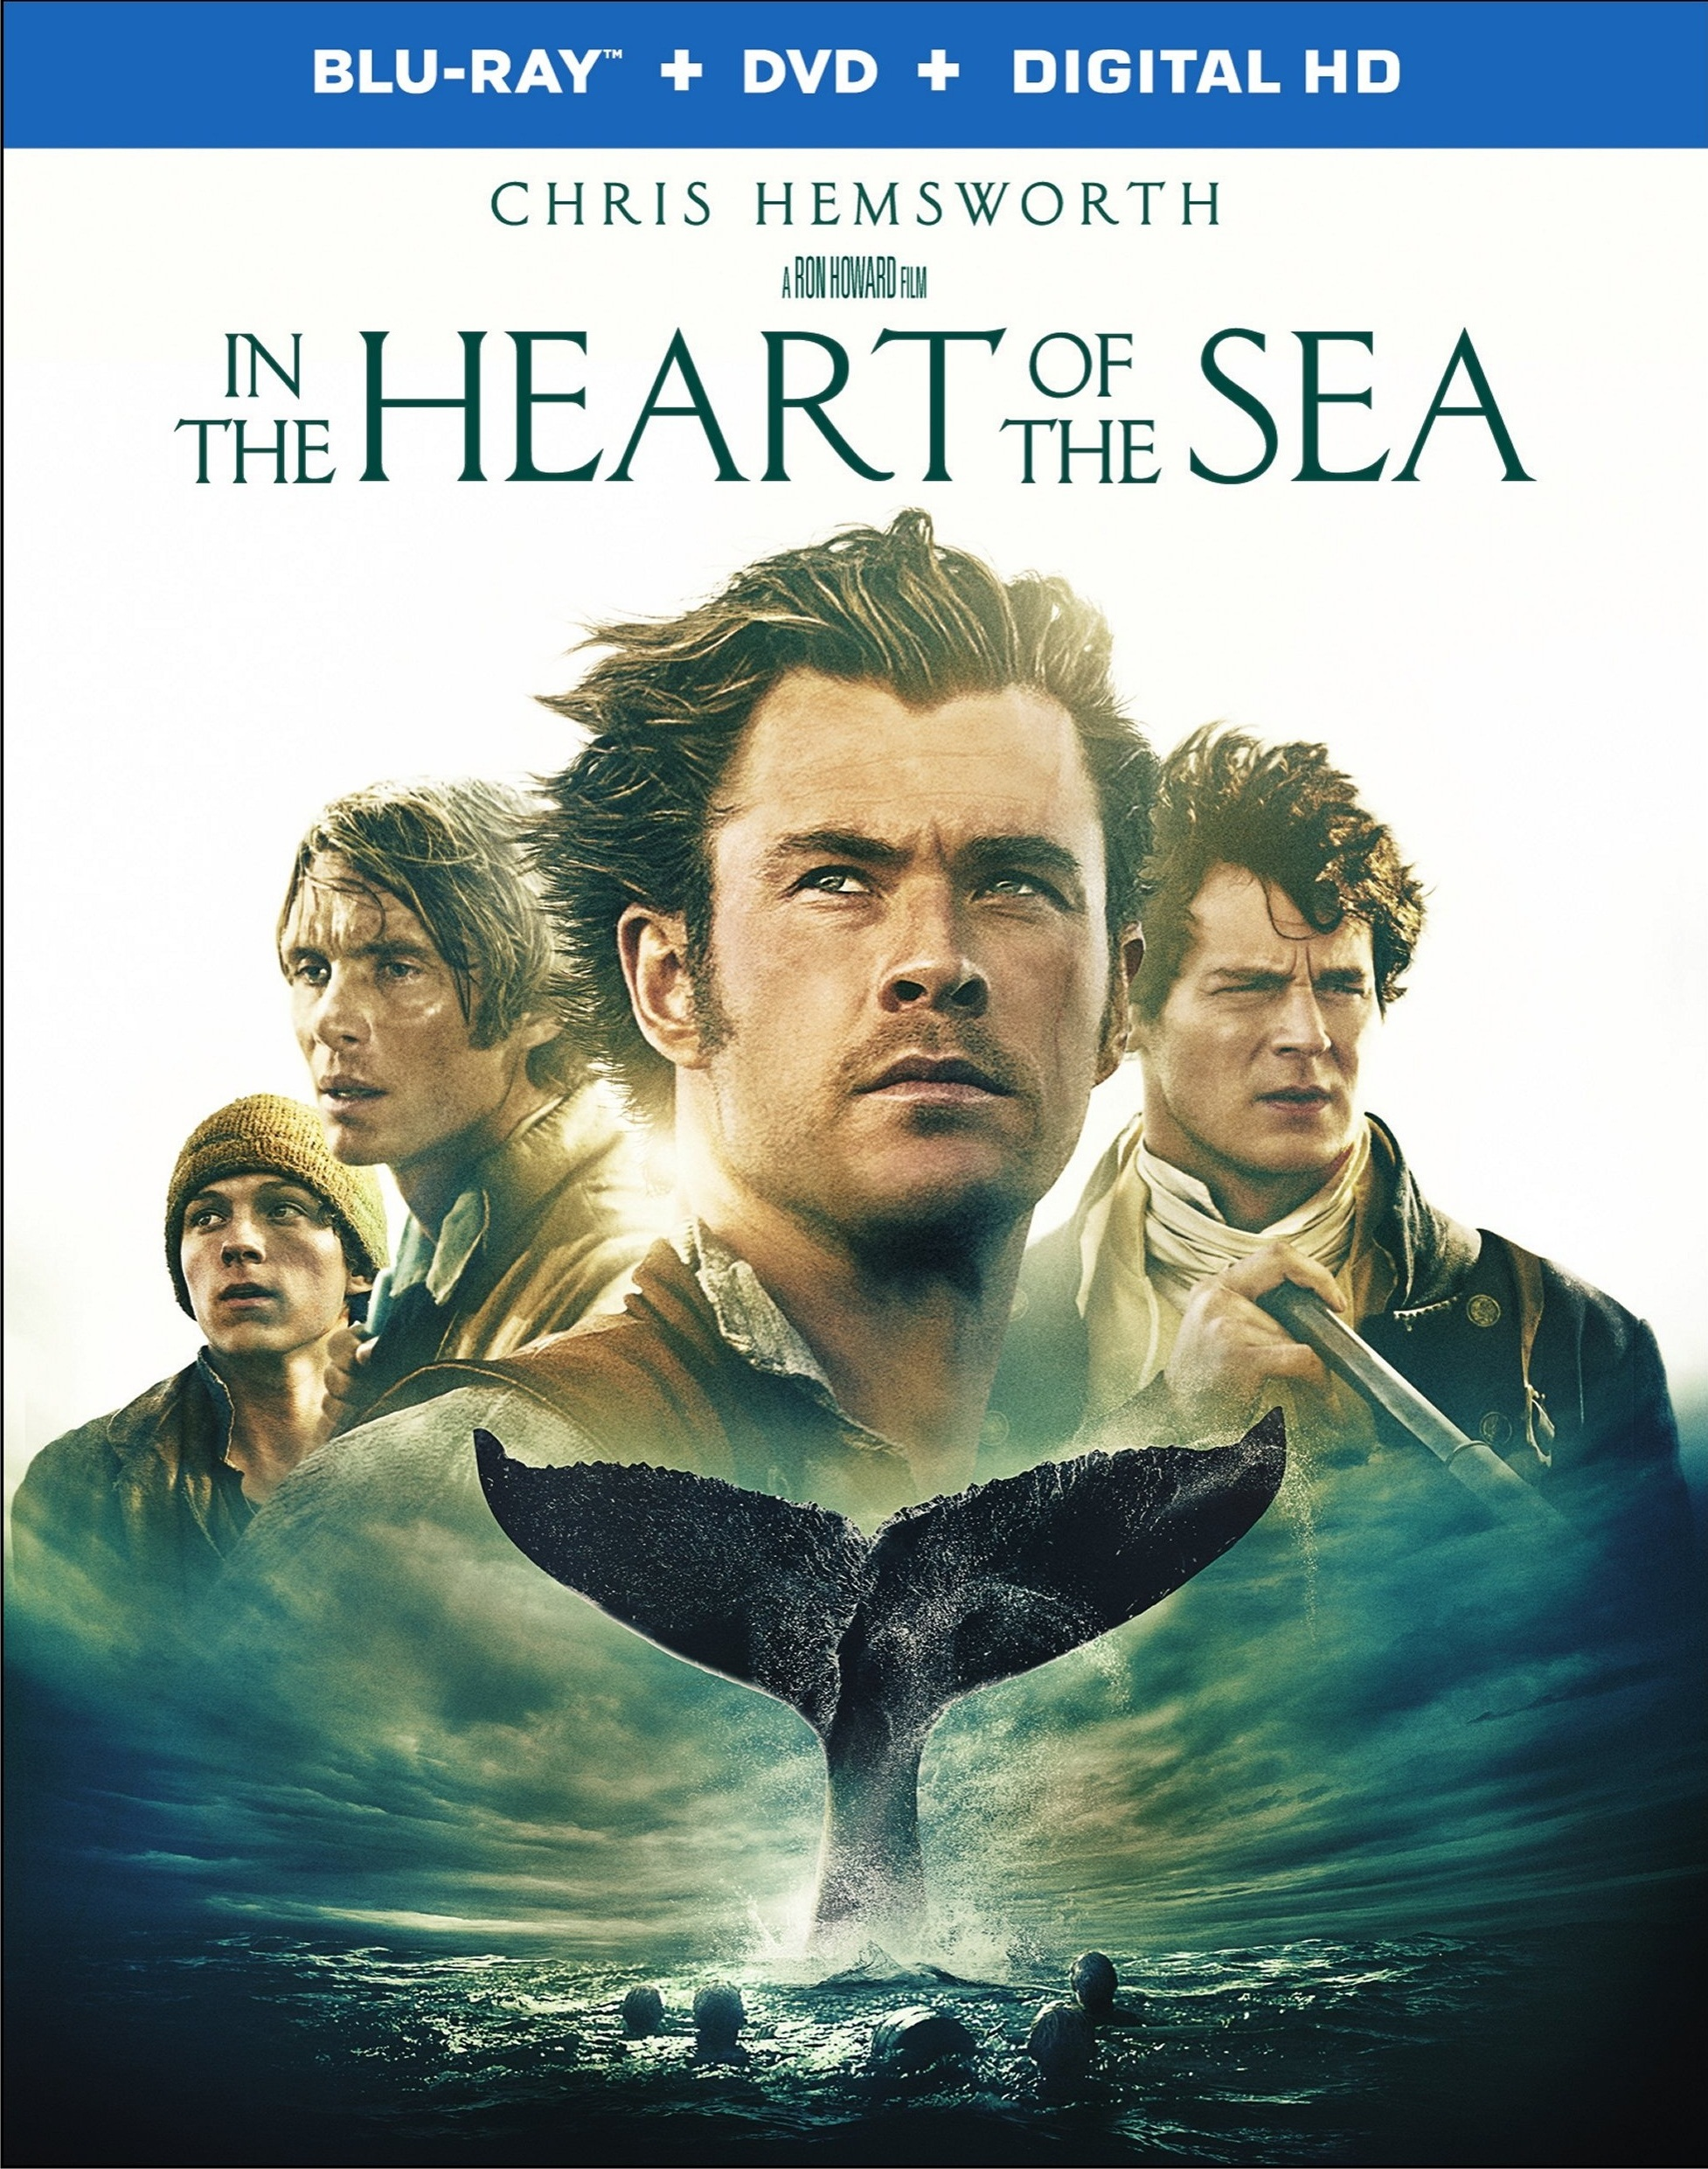 In the Heart of the Sea (2015) Blu-ray